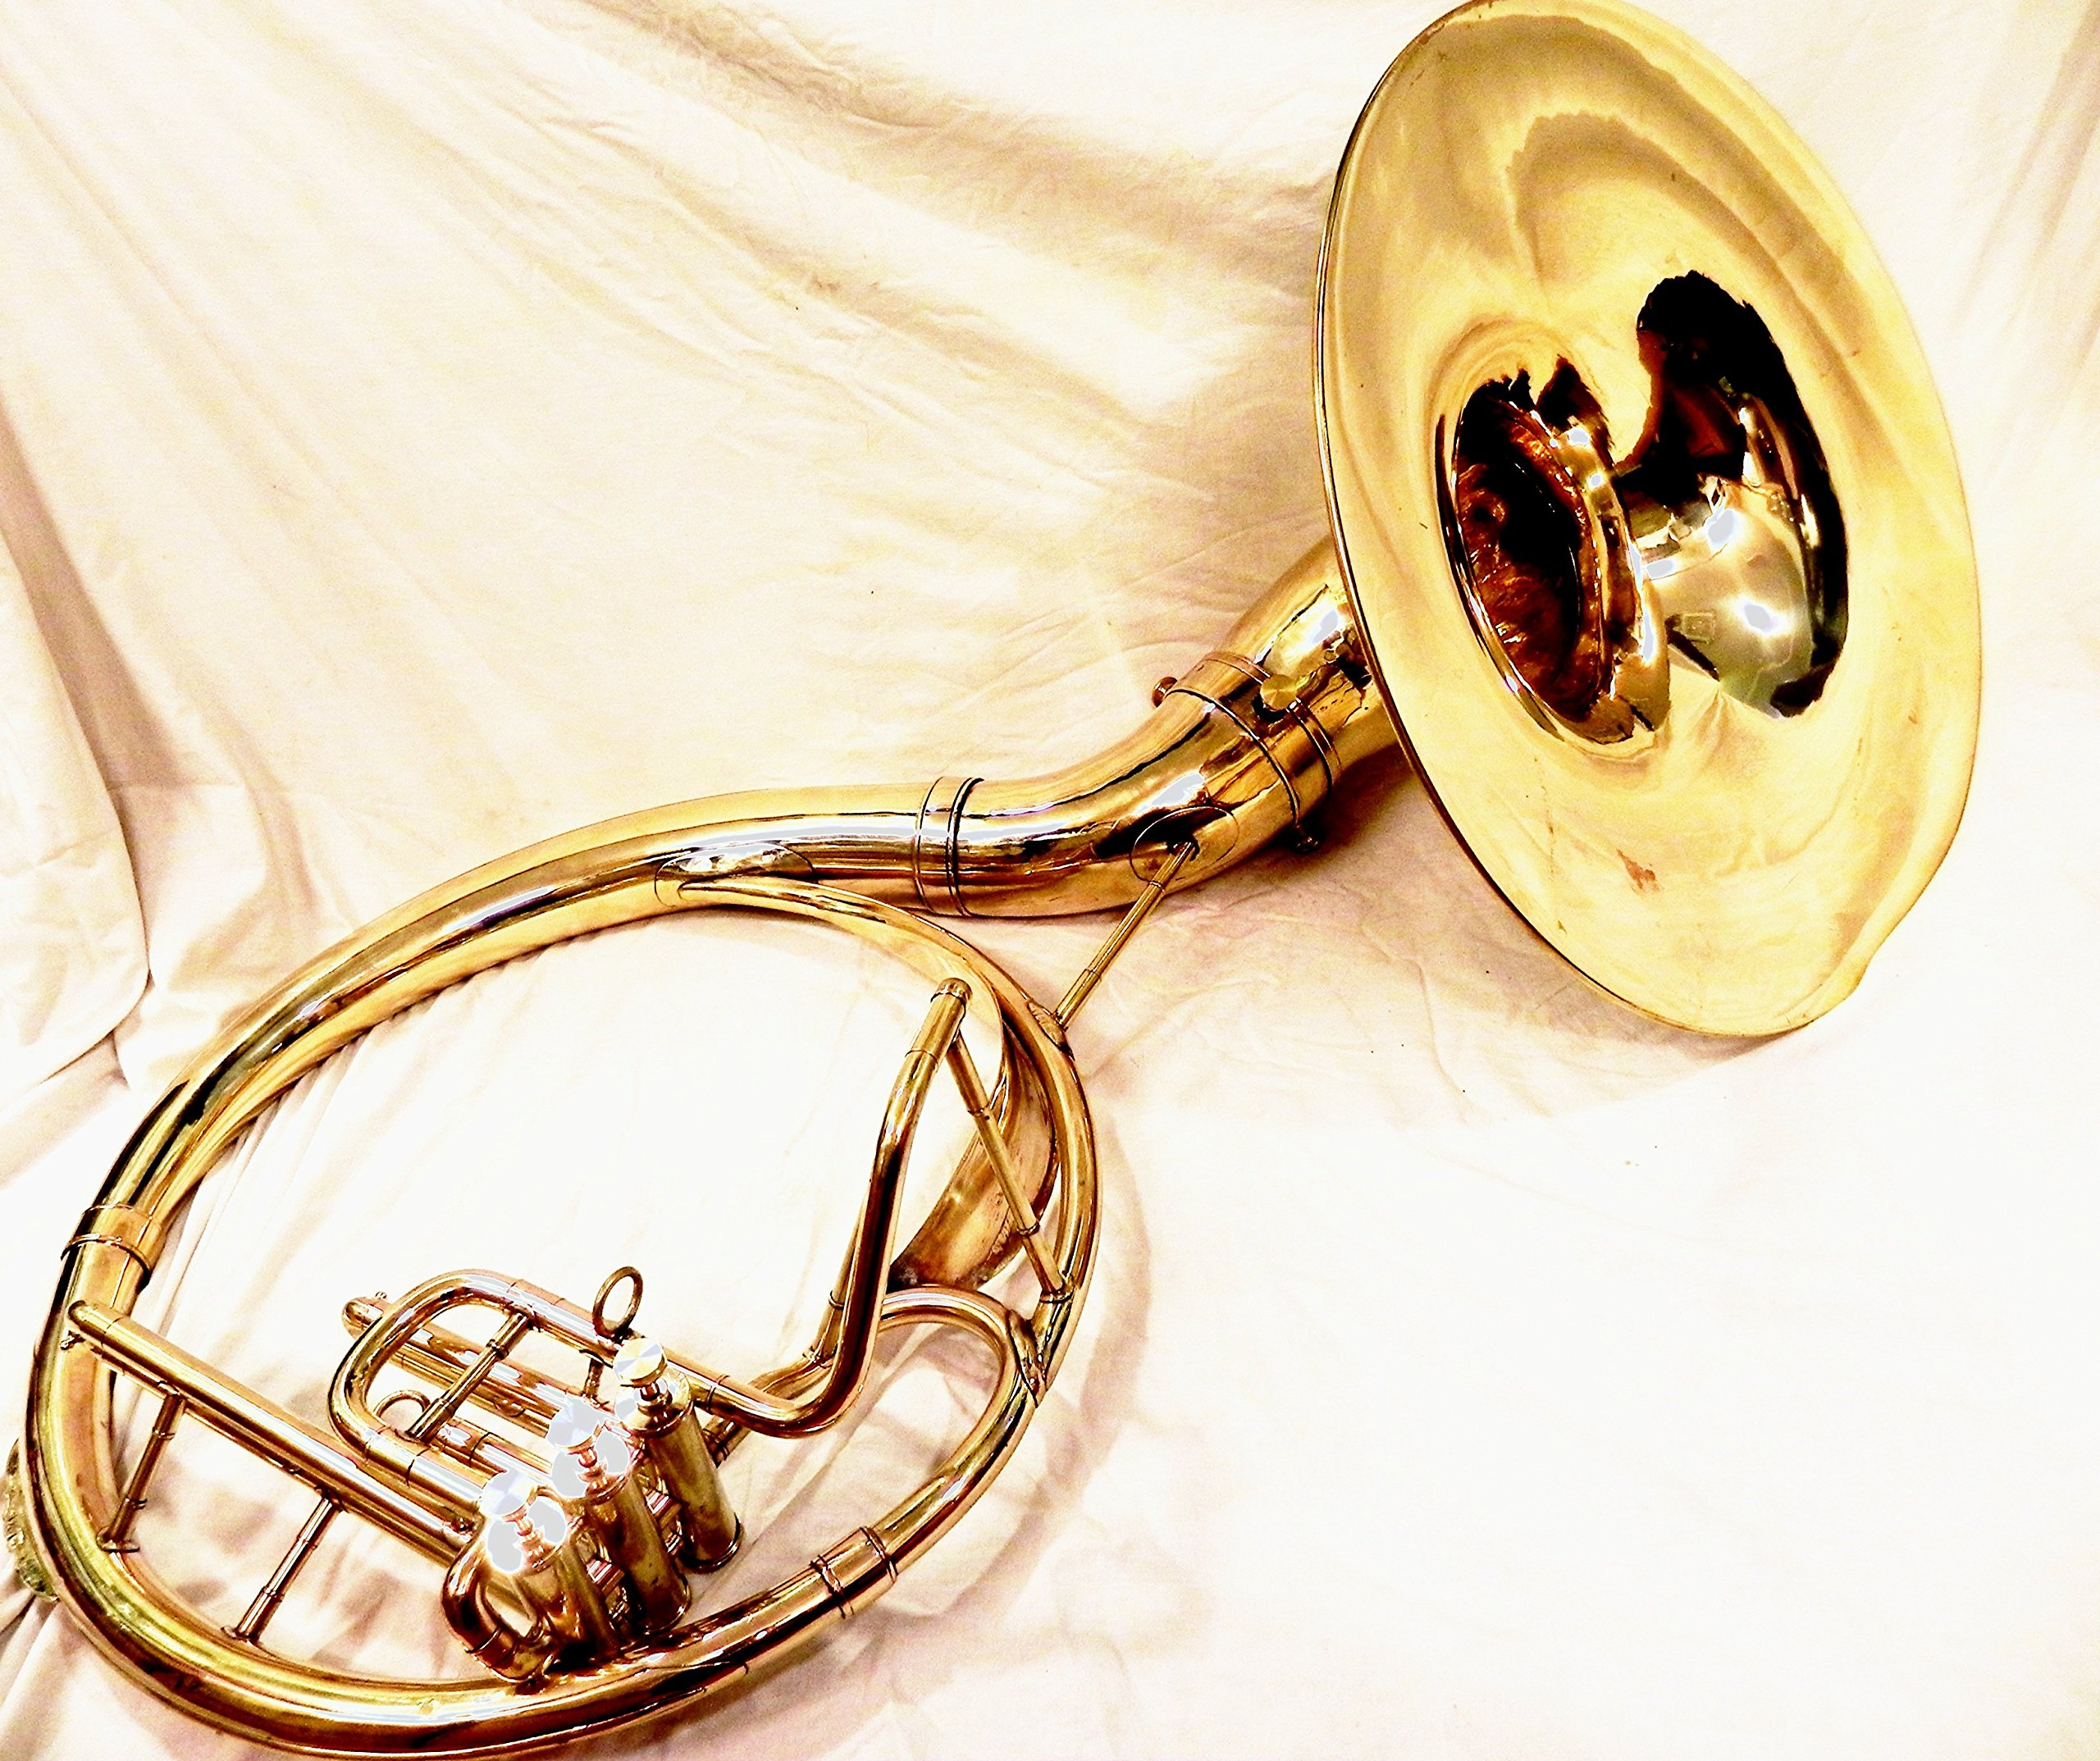 INDIAN HANDMADE BRASS FINISH 22''SOUSAPHONE BRASS MADE TUBA MOUTH PIECE WITH BAG by IM